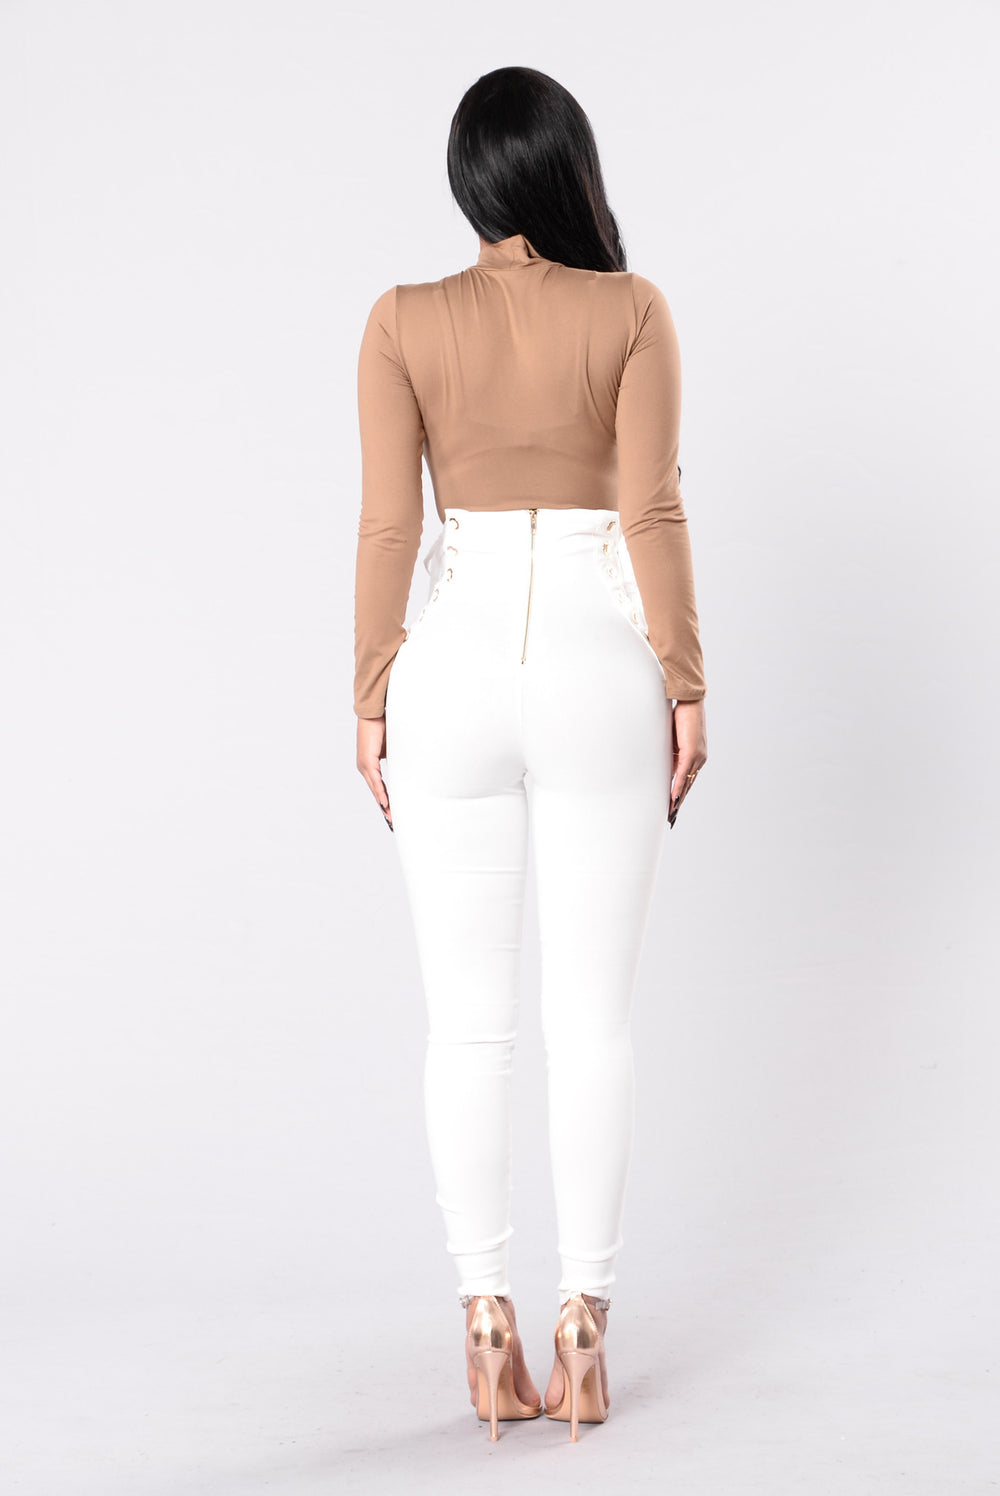 Pull Up Real Fast Pants - White